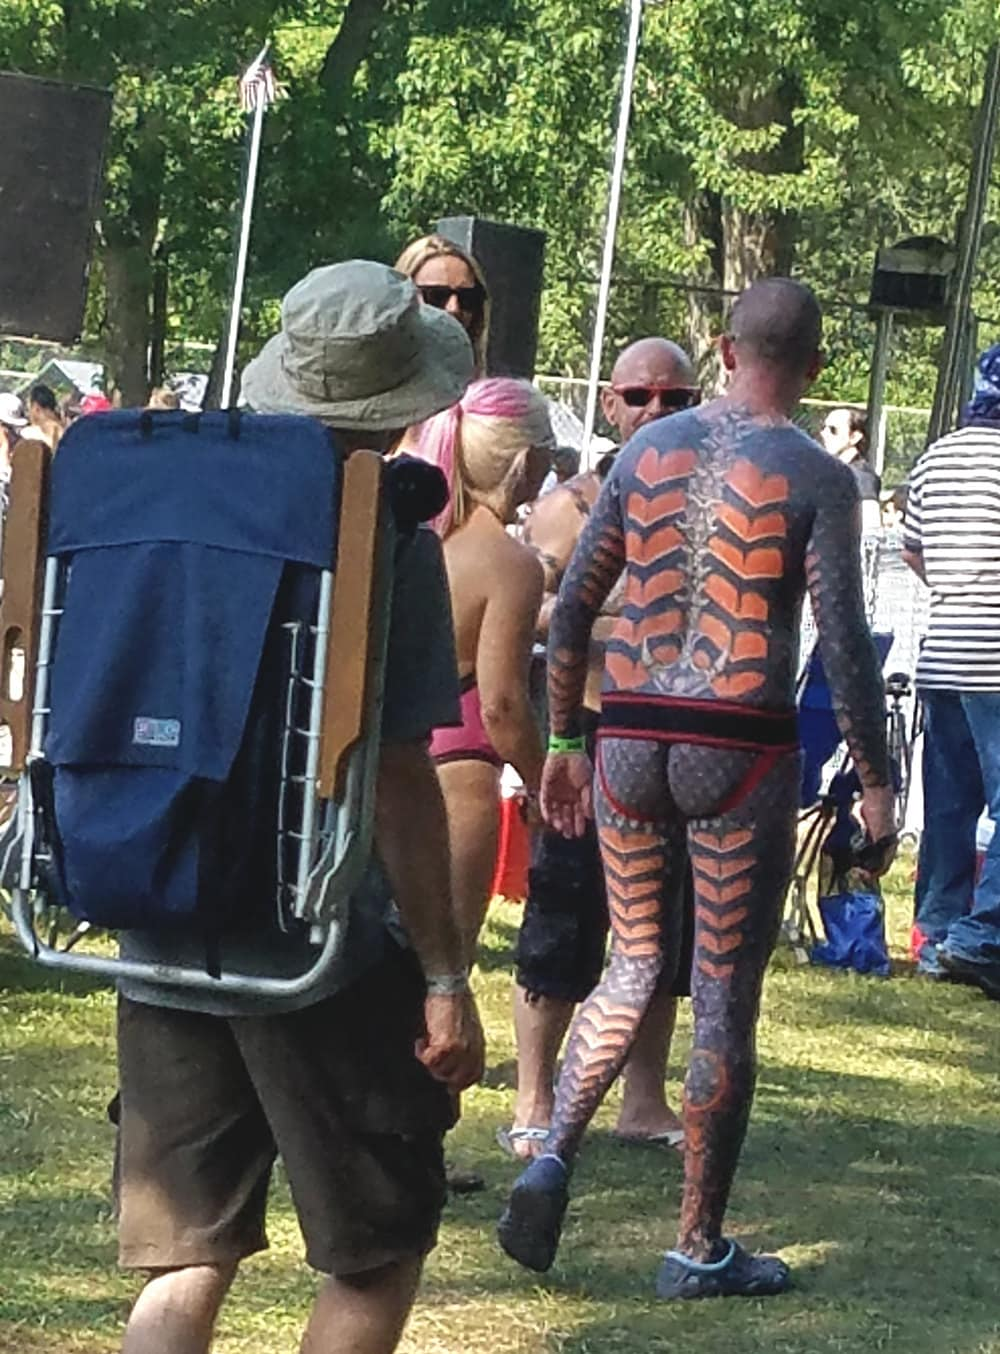 Nudes A Poppin 2017, full body heart mechanical suit tattoo